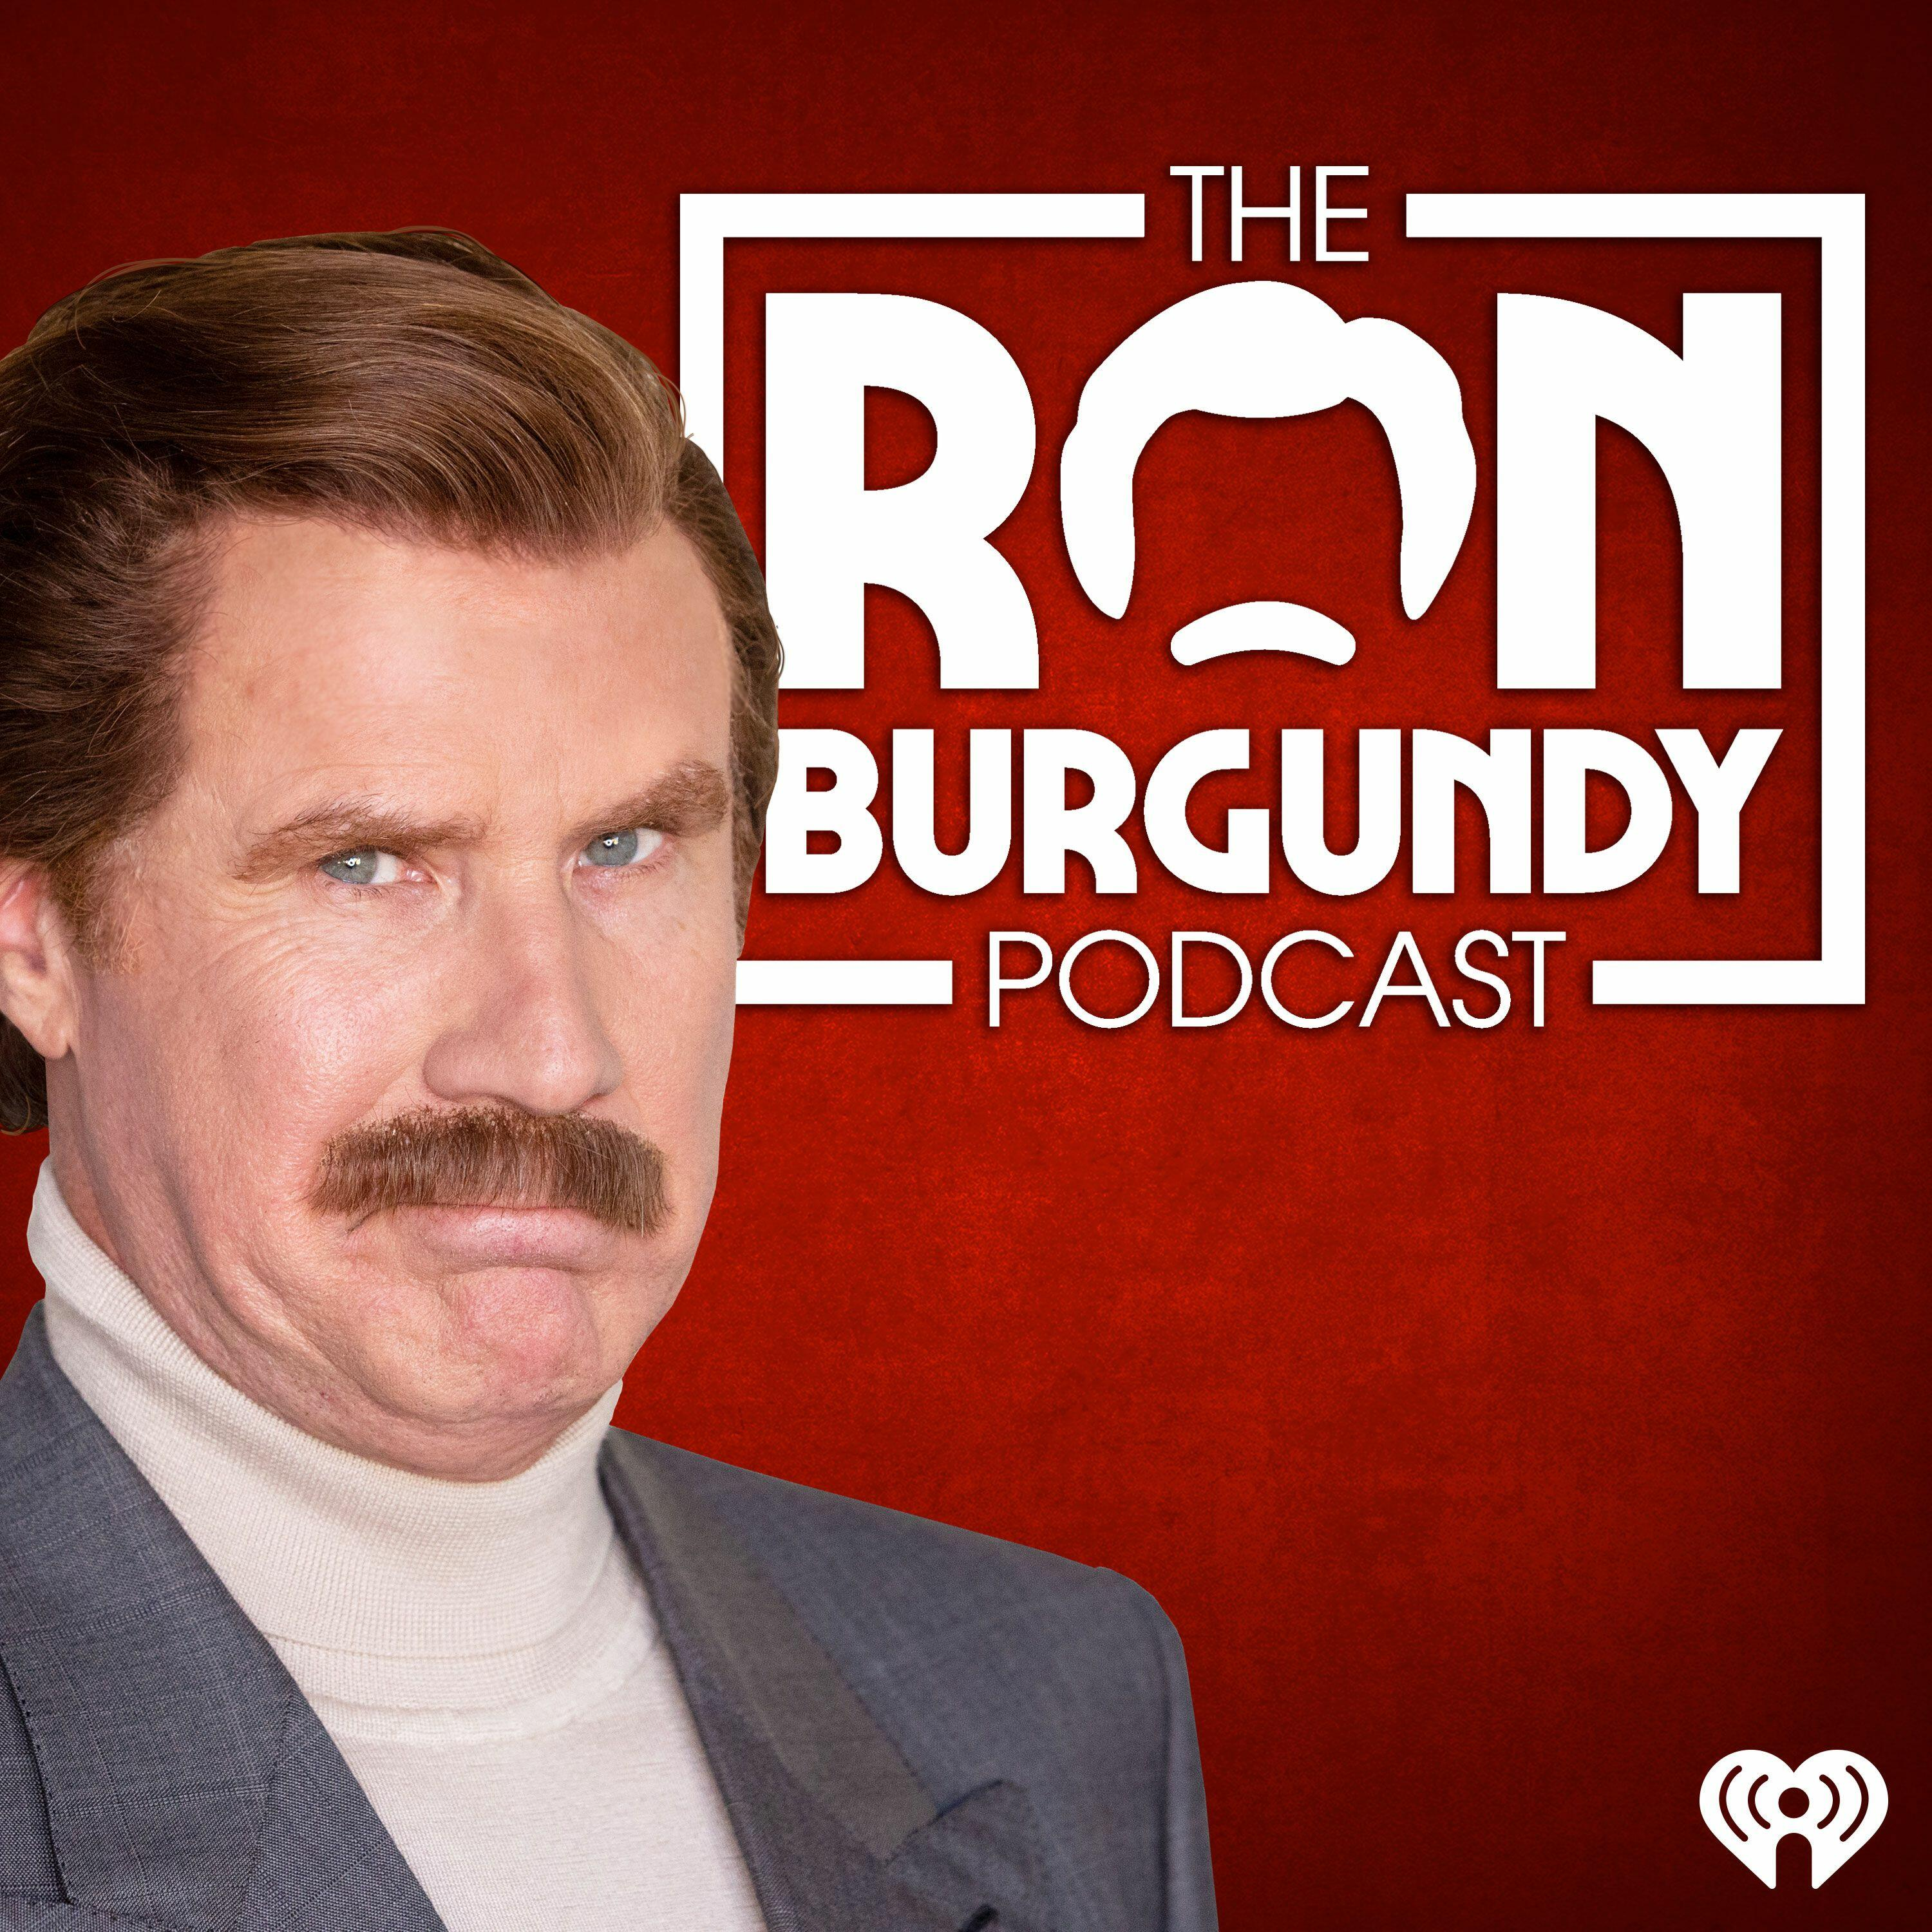 Listen to the The Ron Burgundy Podcast Episode - Oscars on iHeartRadio | iHeartRadio